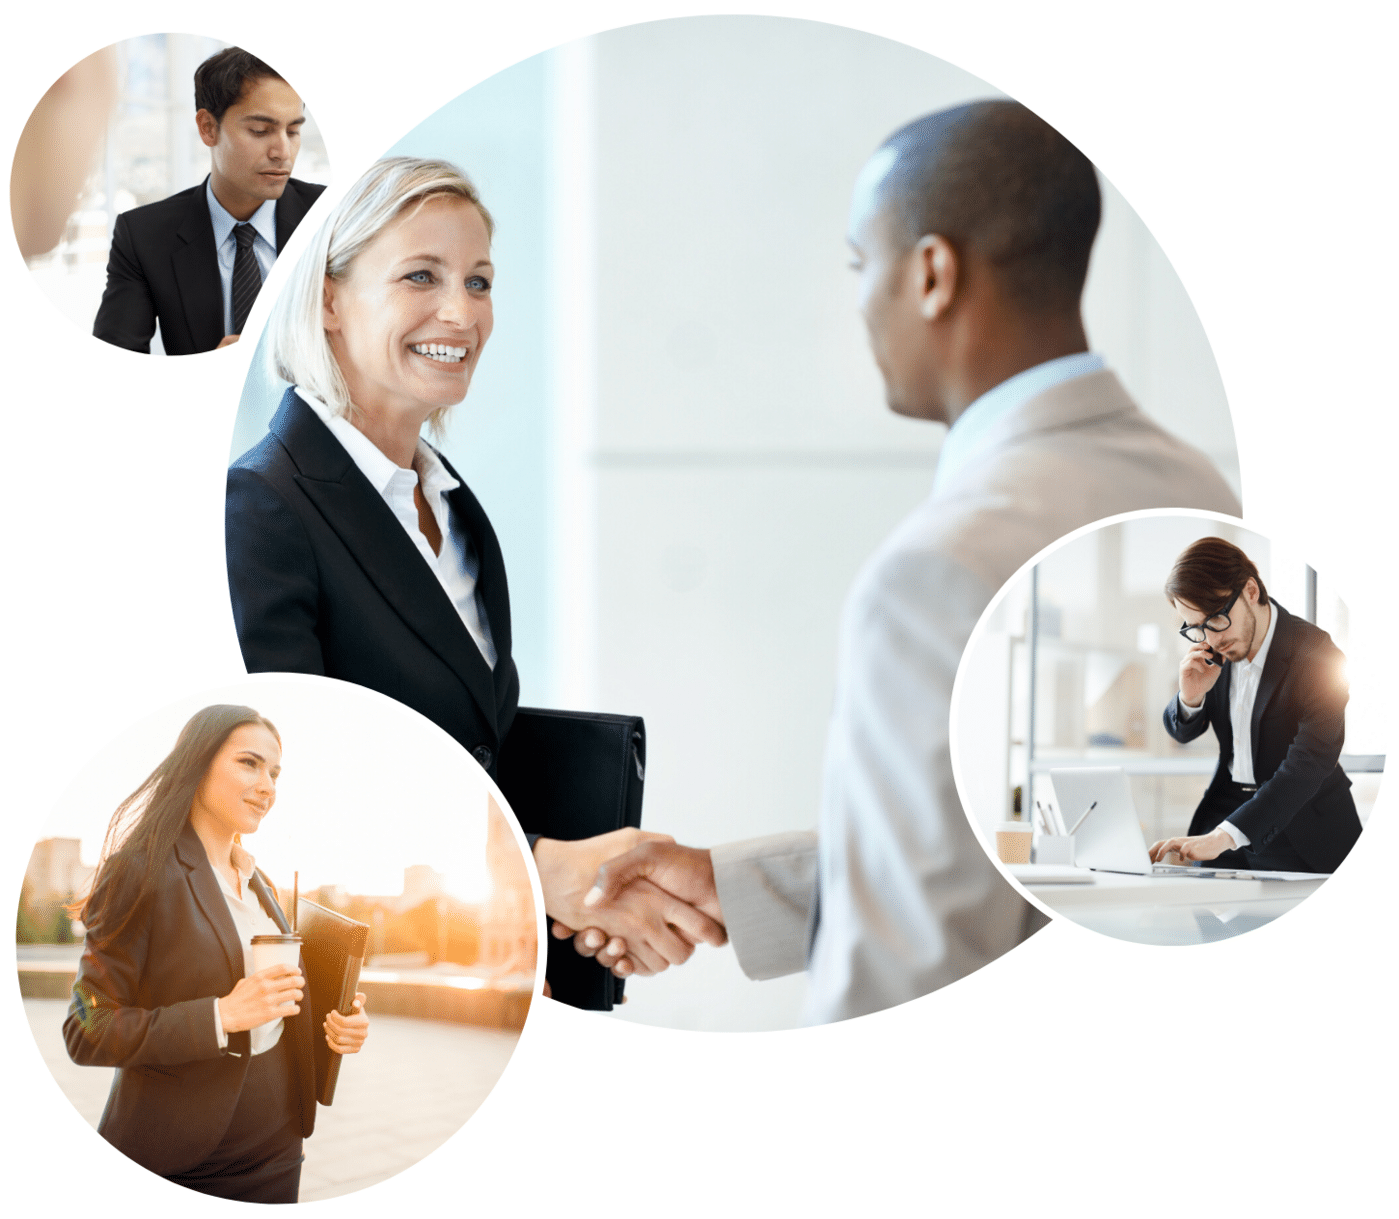 recruitment services hr search RPO executive search retained search